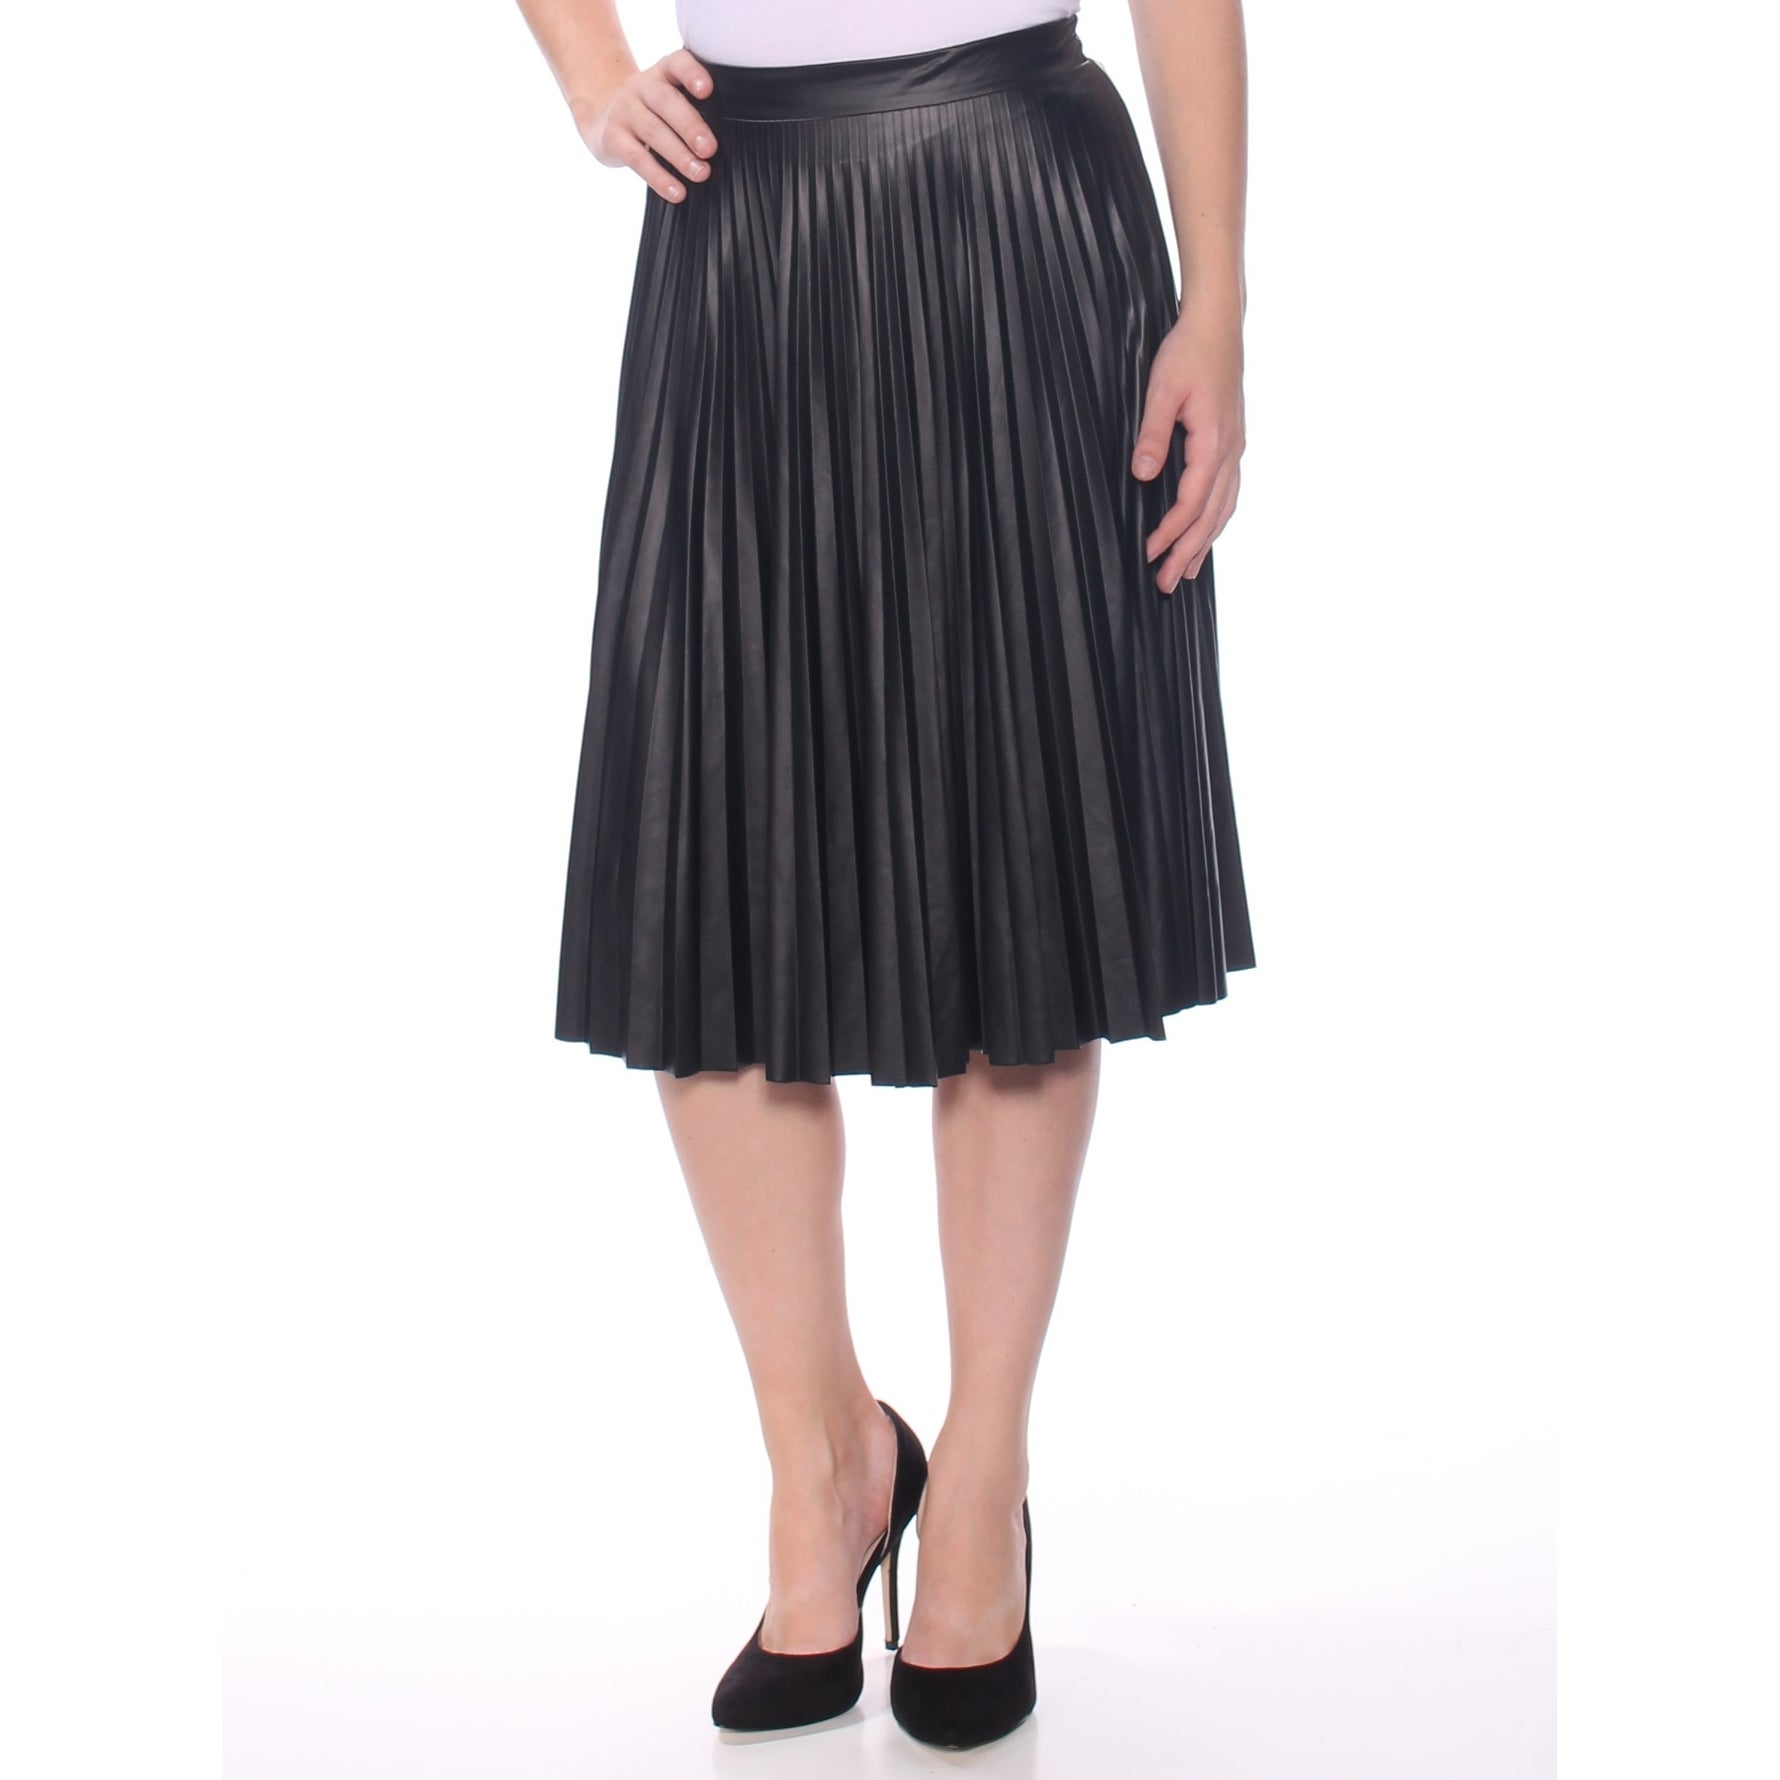 e0598467f4 Size XXS Skirts | Find Great Women's Clothing Deals Shopping at Overstock